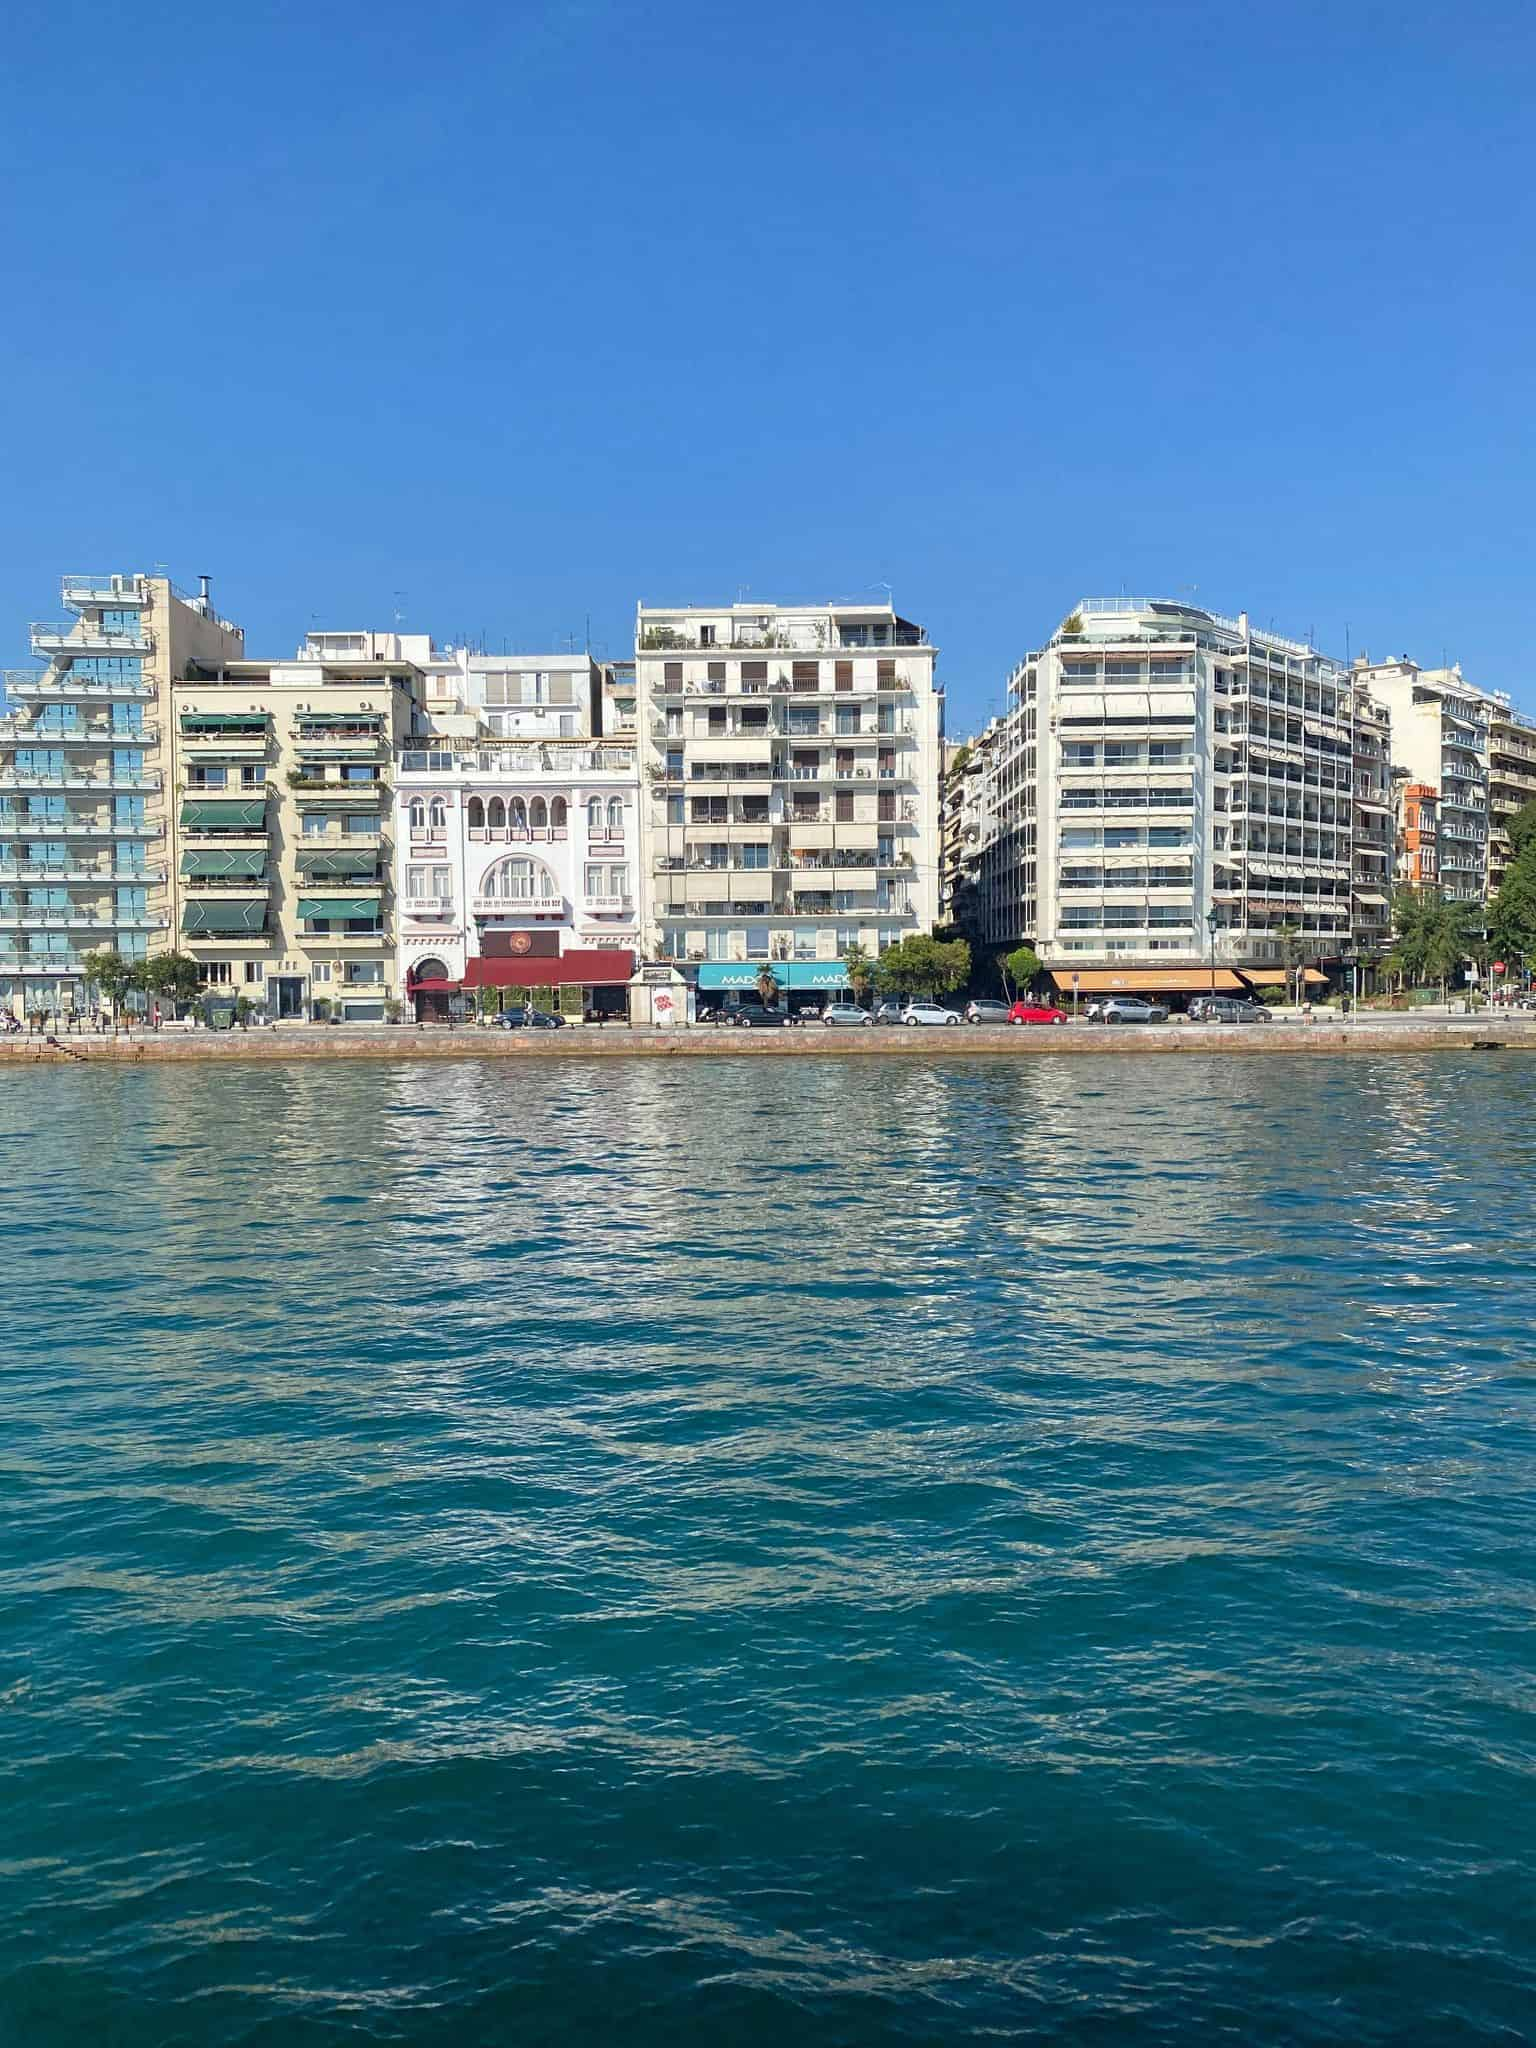 Departing Thessaloniki by sea taxi